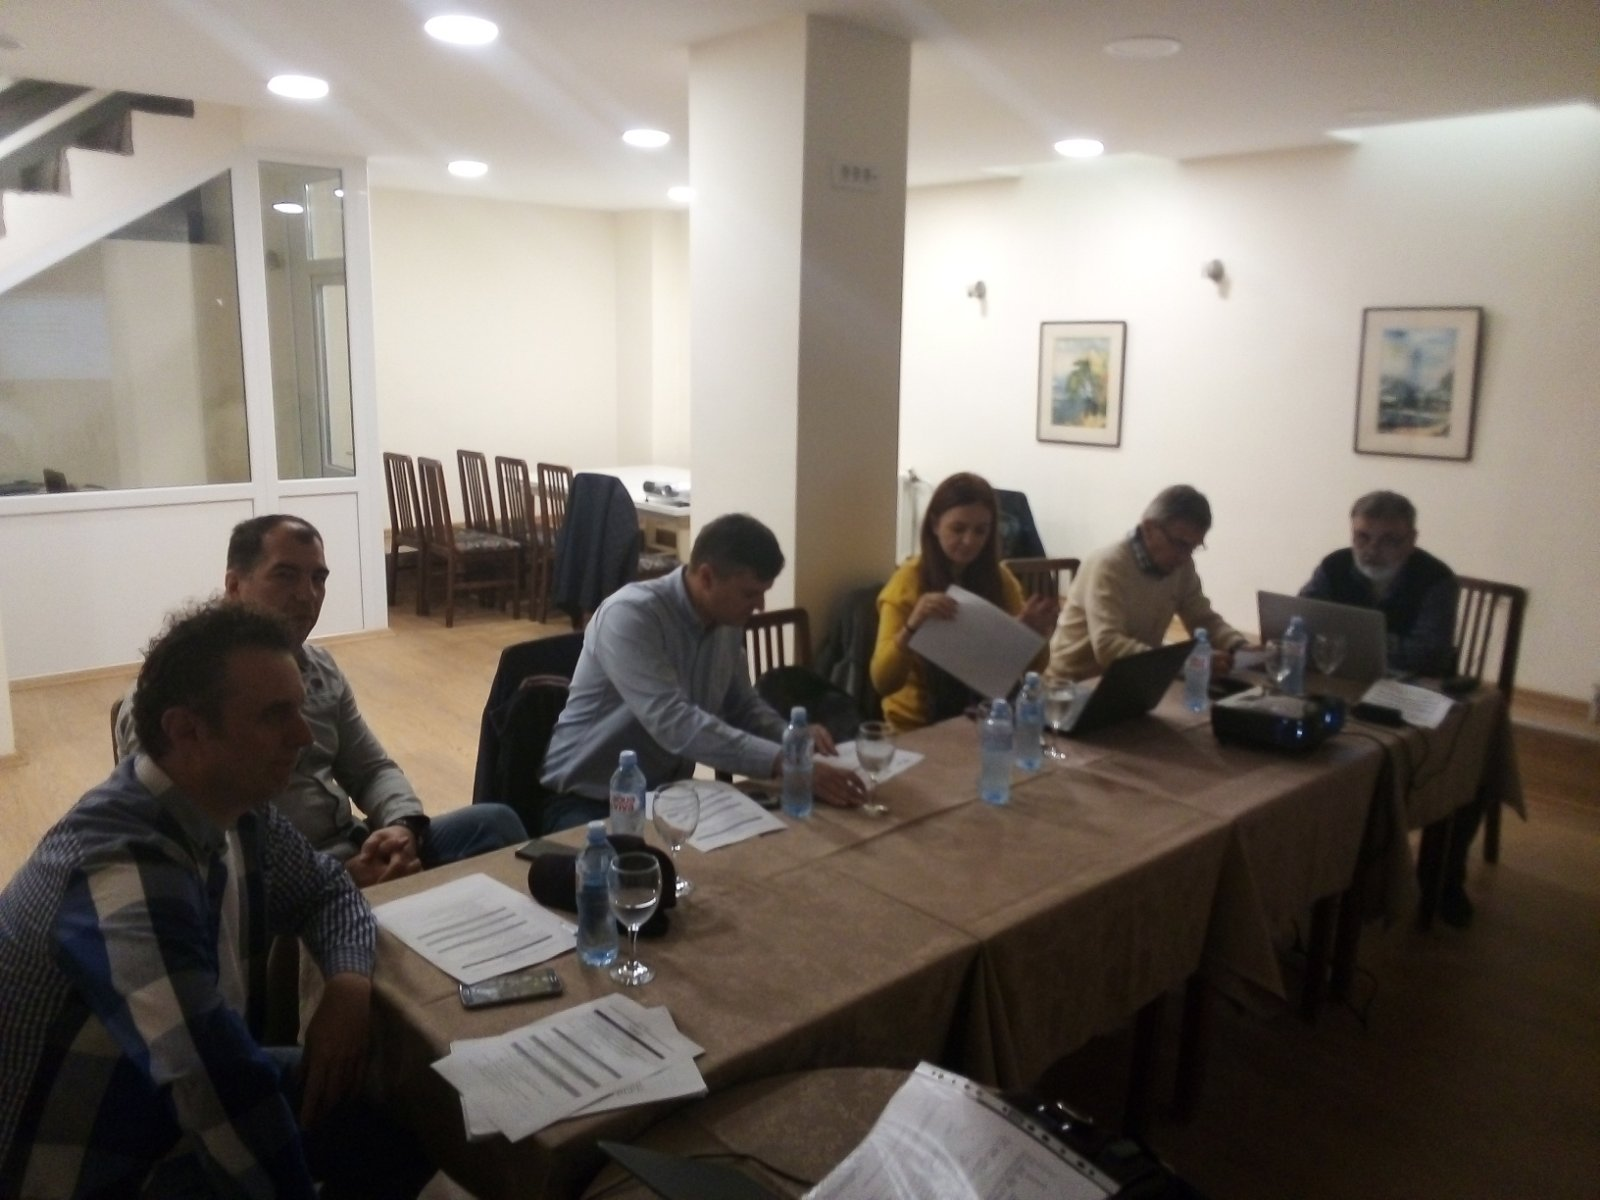 TO REGOS The Third Working Group Meetings For The Hotel And Restaurant Technician Occupational Standard In Skopje